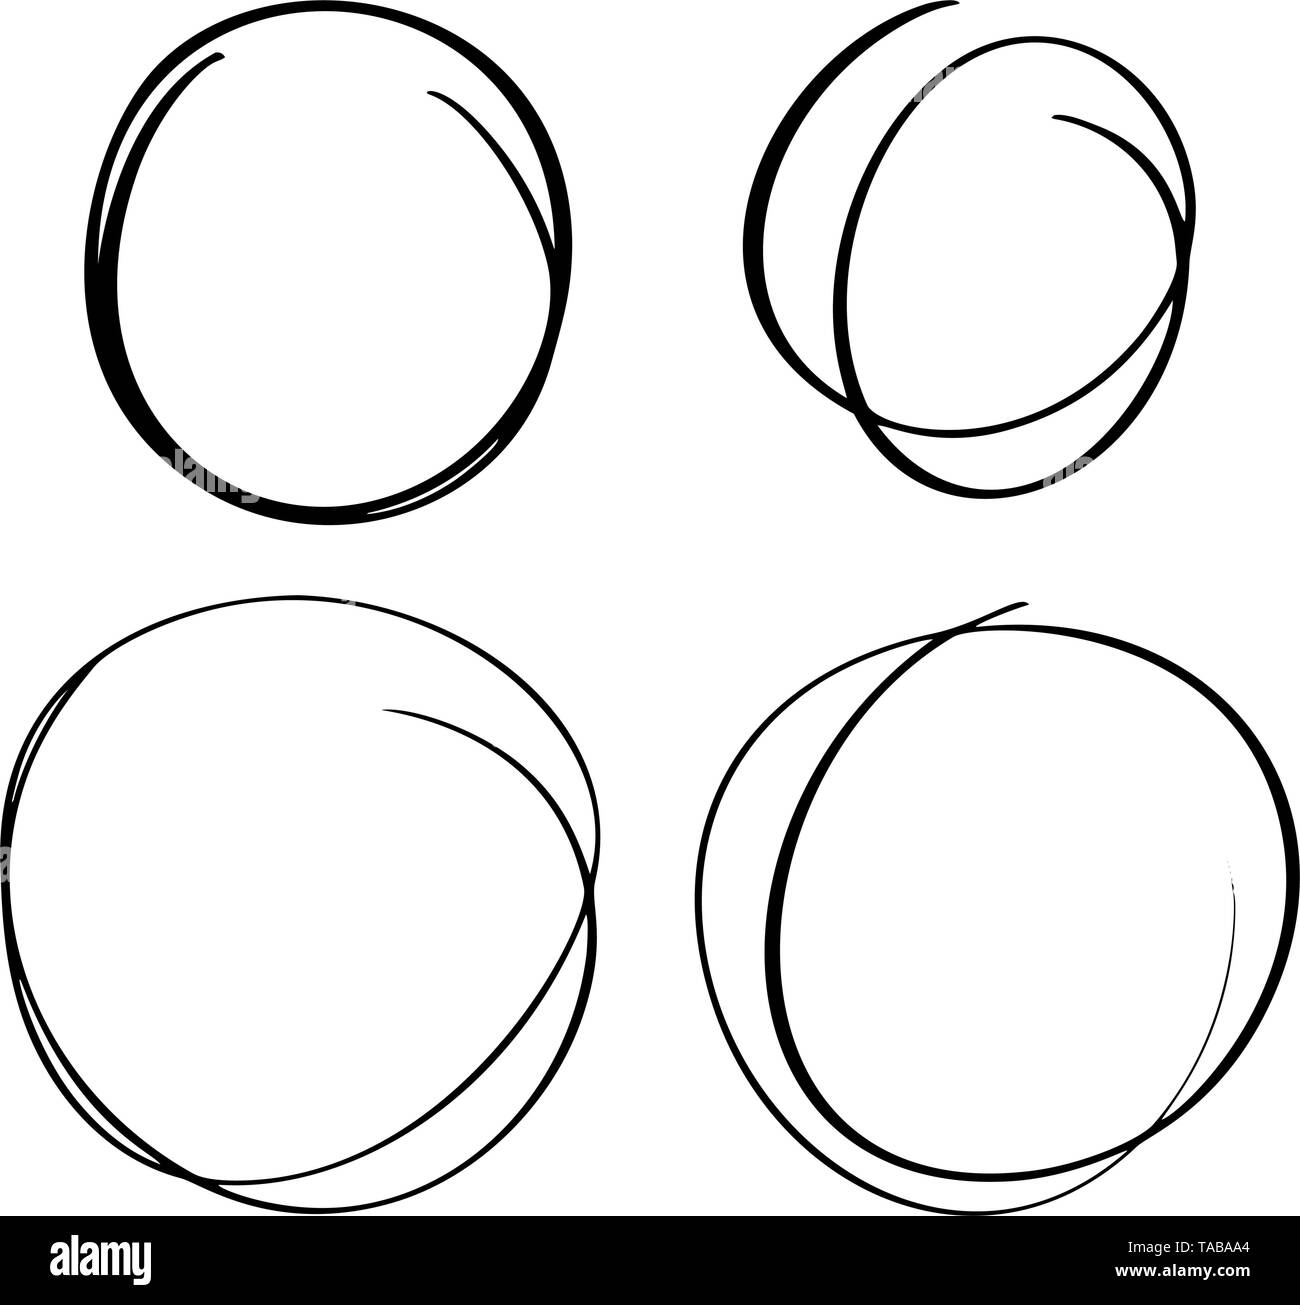 Hand drawn circle line sketch set. Vector circular scribble doodle round circles for message note mark design element. Pencil or pen graffiti bubble o - Stock Image